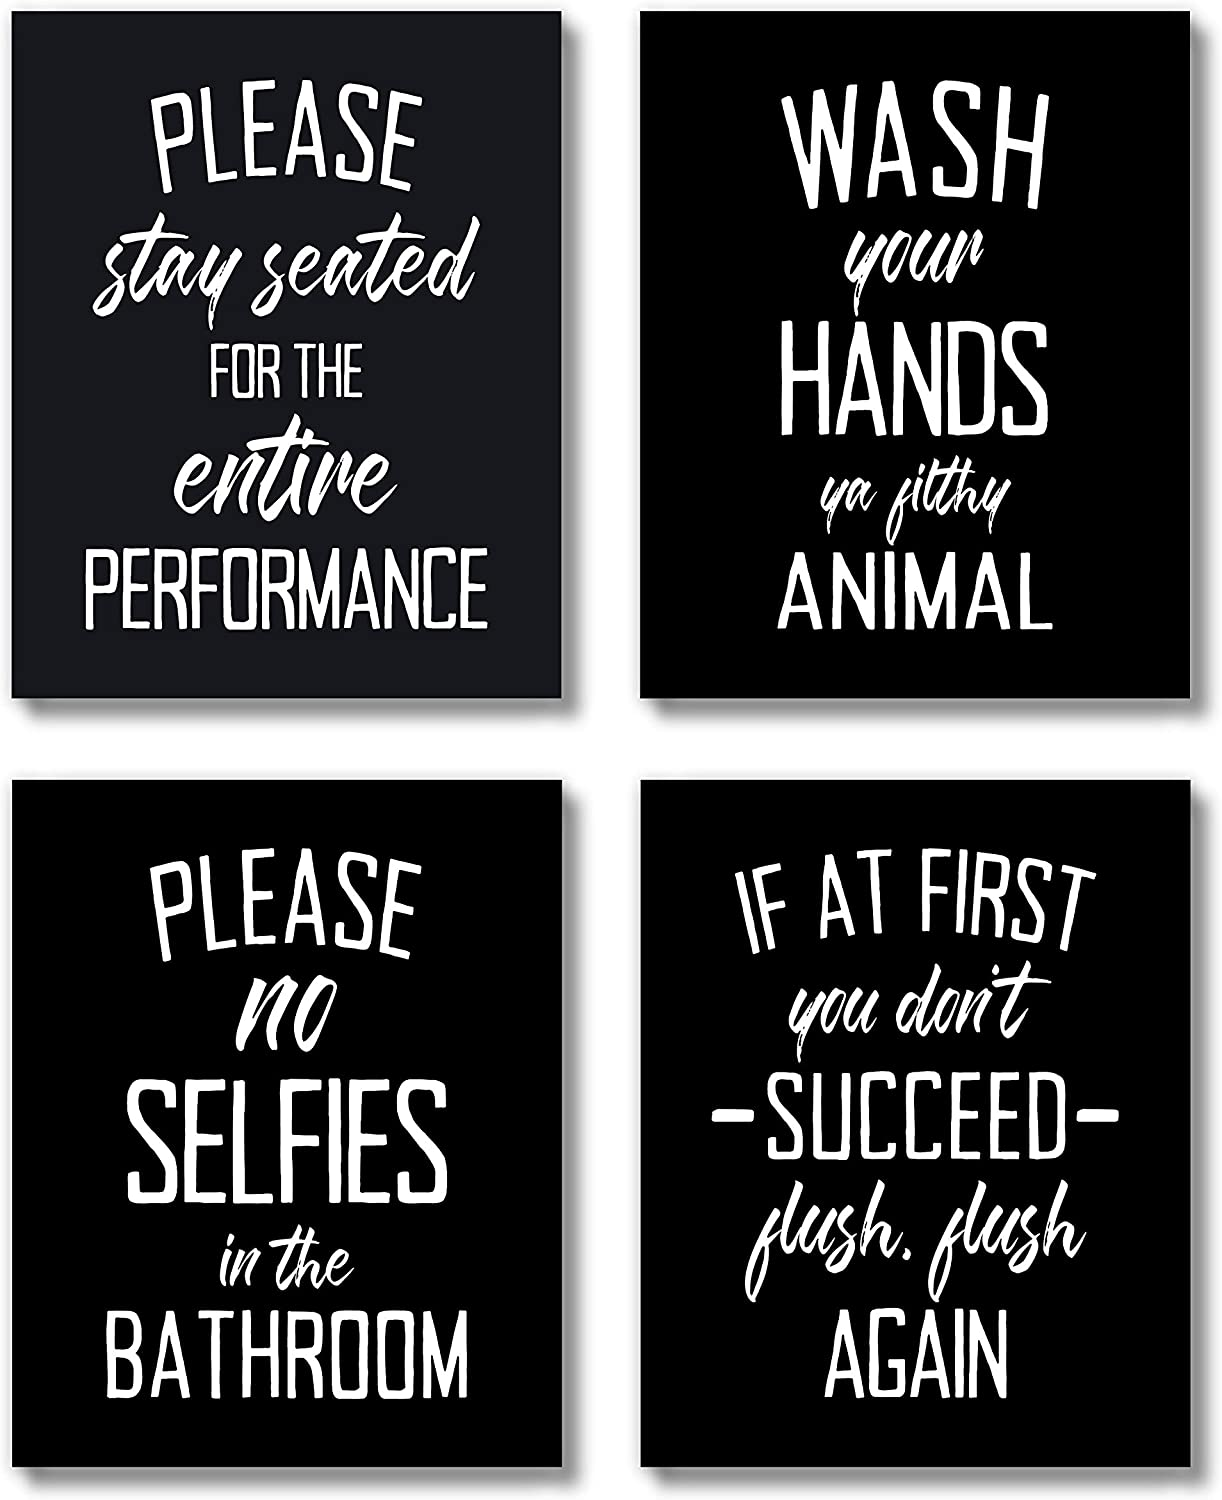 Brooke & Vine Funny Bathroom Decor Wall Art Prints (UNFRAMED 8 x 10 Set of 4) Restroom Powder Room Wash Laundry Room Farmhouse Wall Decor Signs Posters - Wash Your Hands - Black